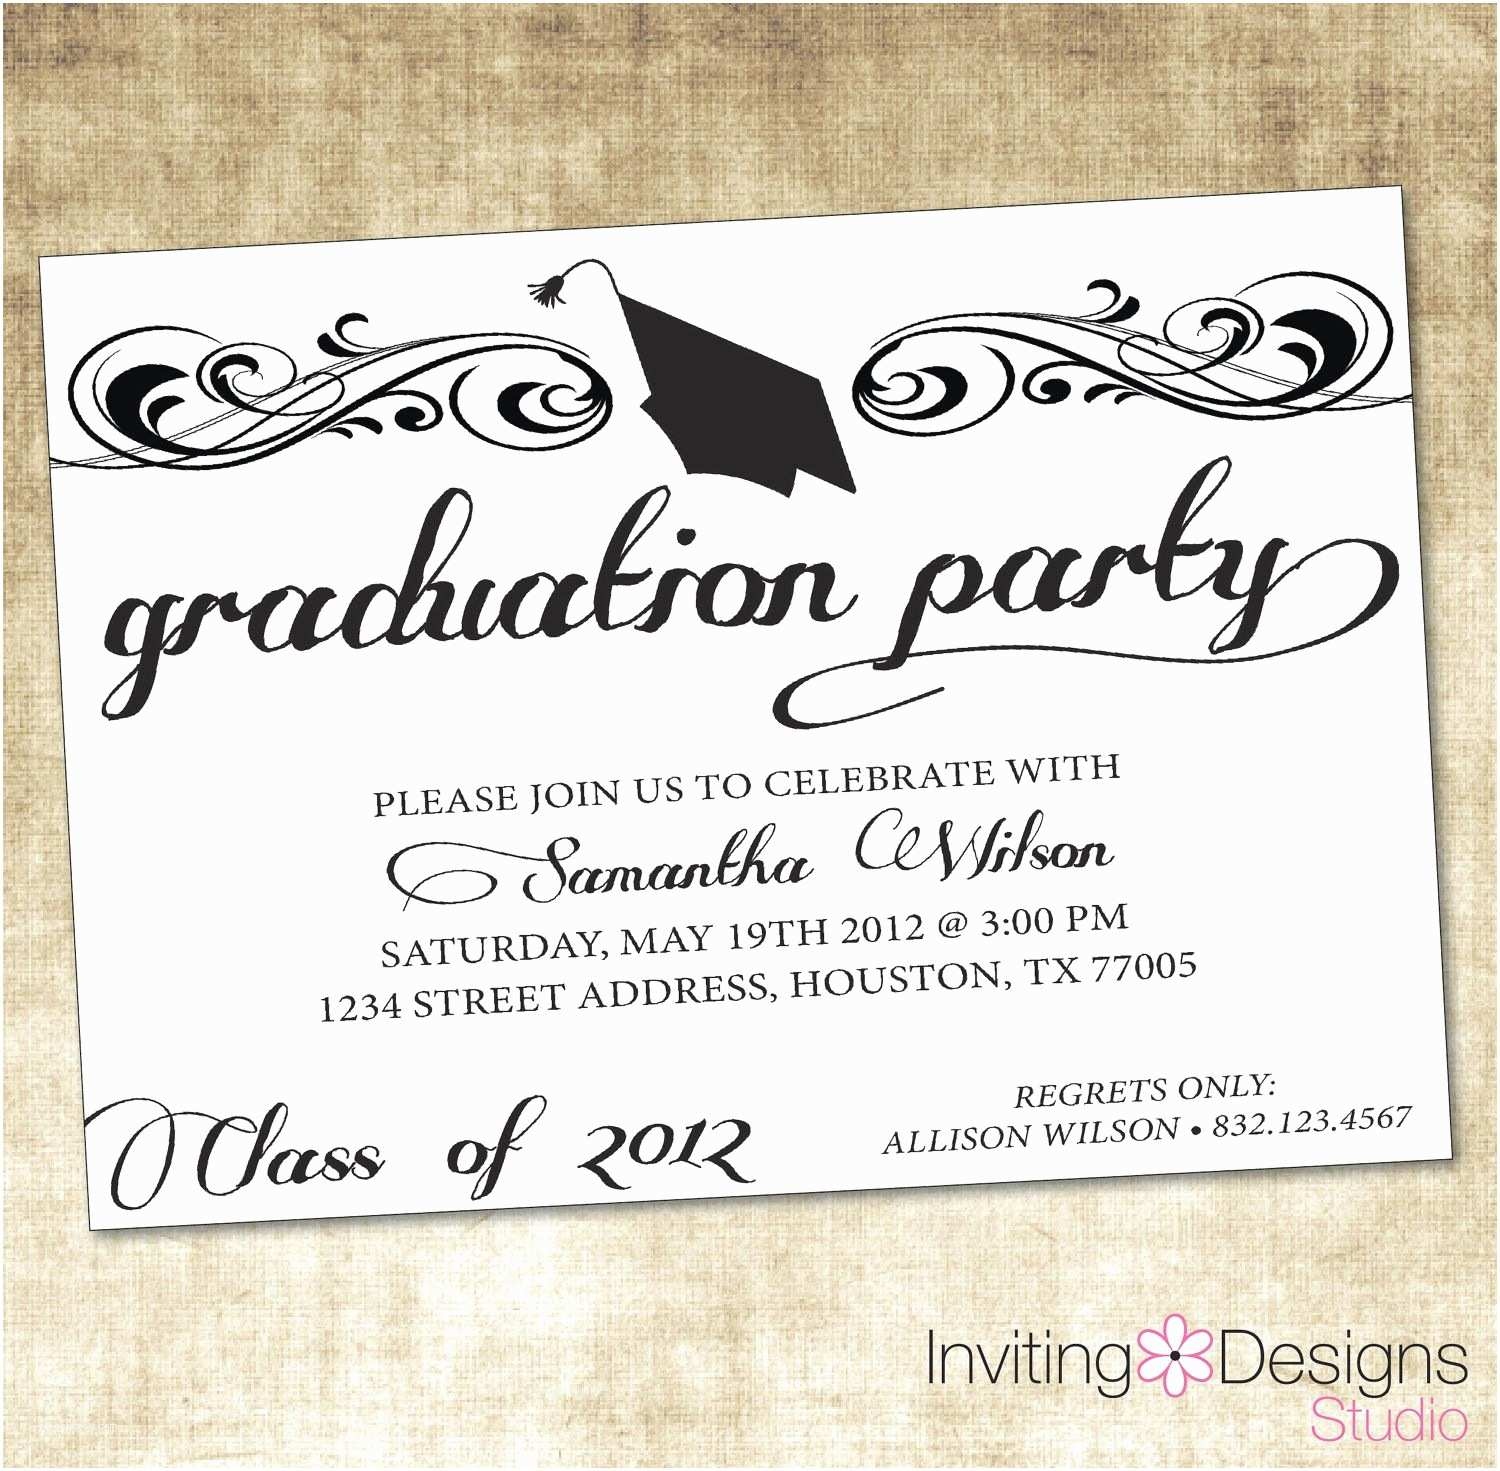 Graduation Party Invitations Templates Free Image Result for Graduation Party Invitation Wording Ideas